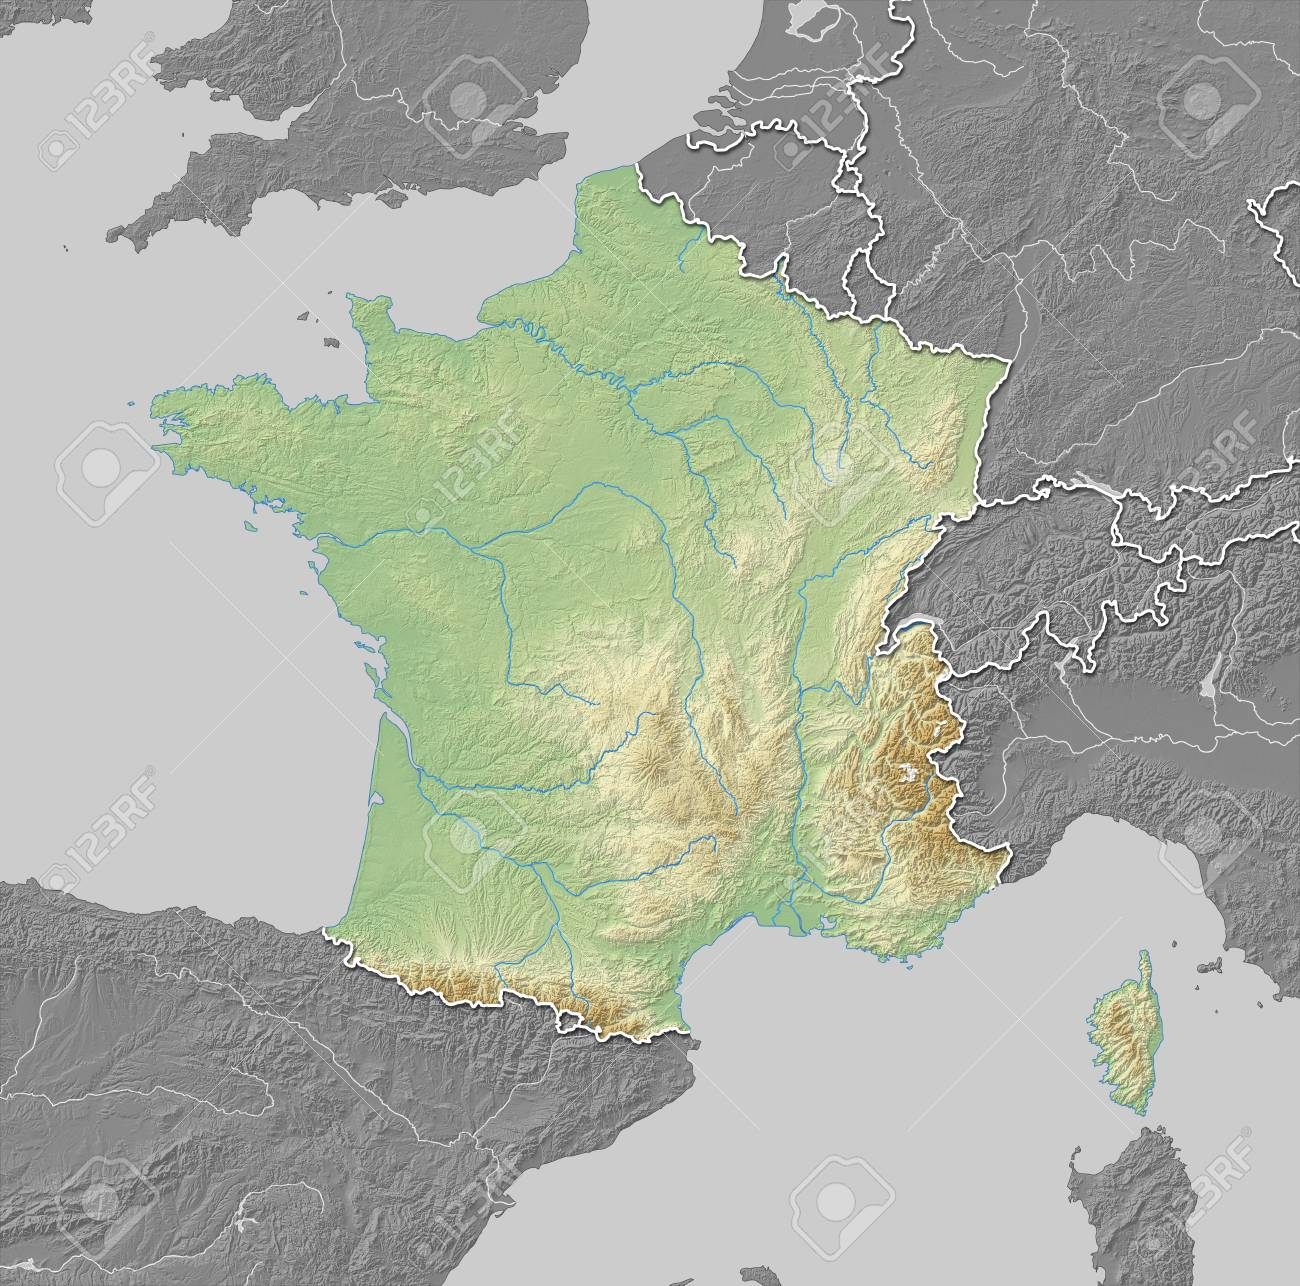 Country Map Of France.Map Of France With Shaded Relief The Nearby Countries Are In